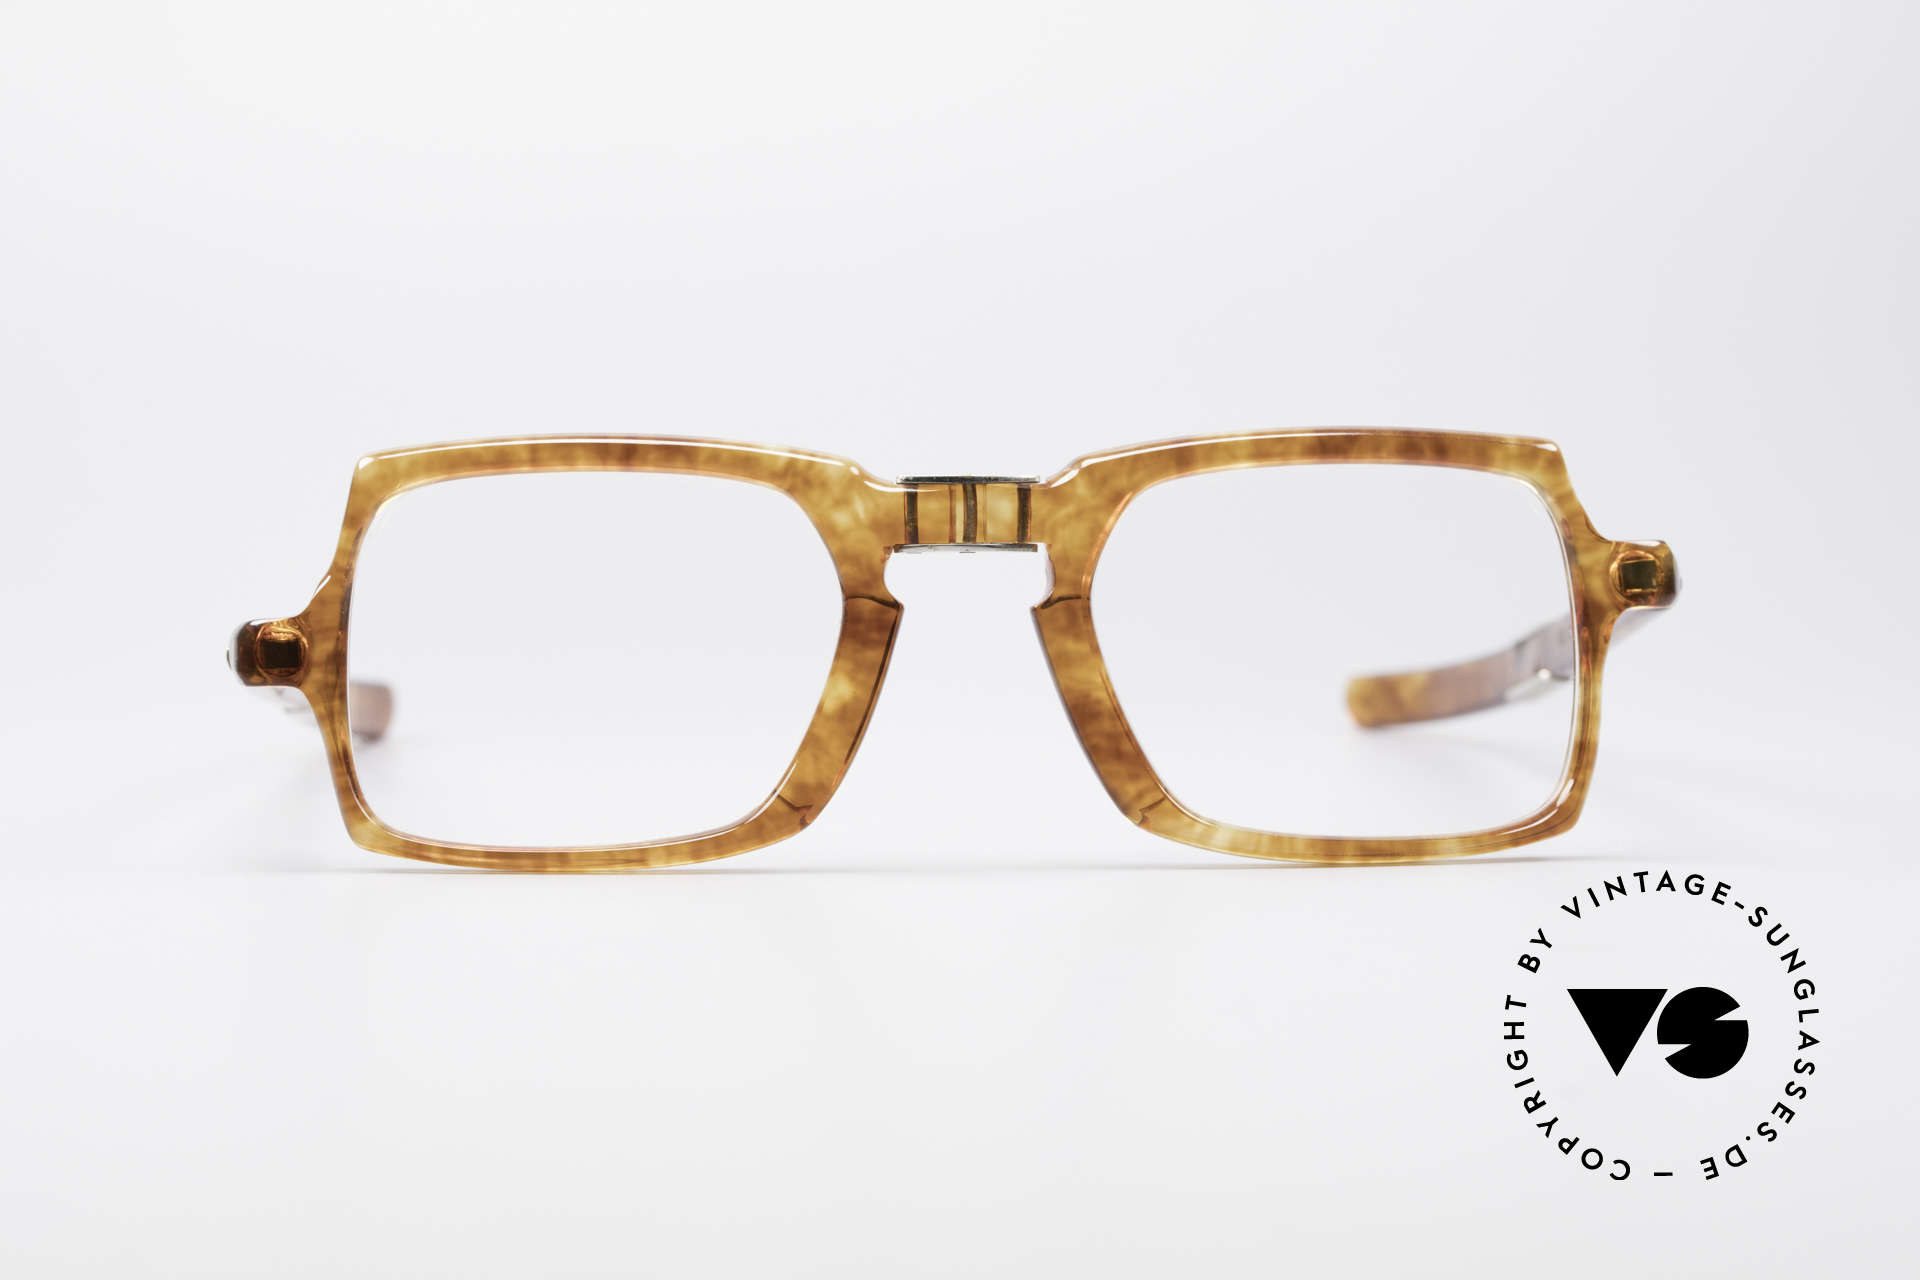 Meyro 618 70's Folding Glasses, very old model from the late 1960's / early 1970's, Made for Men